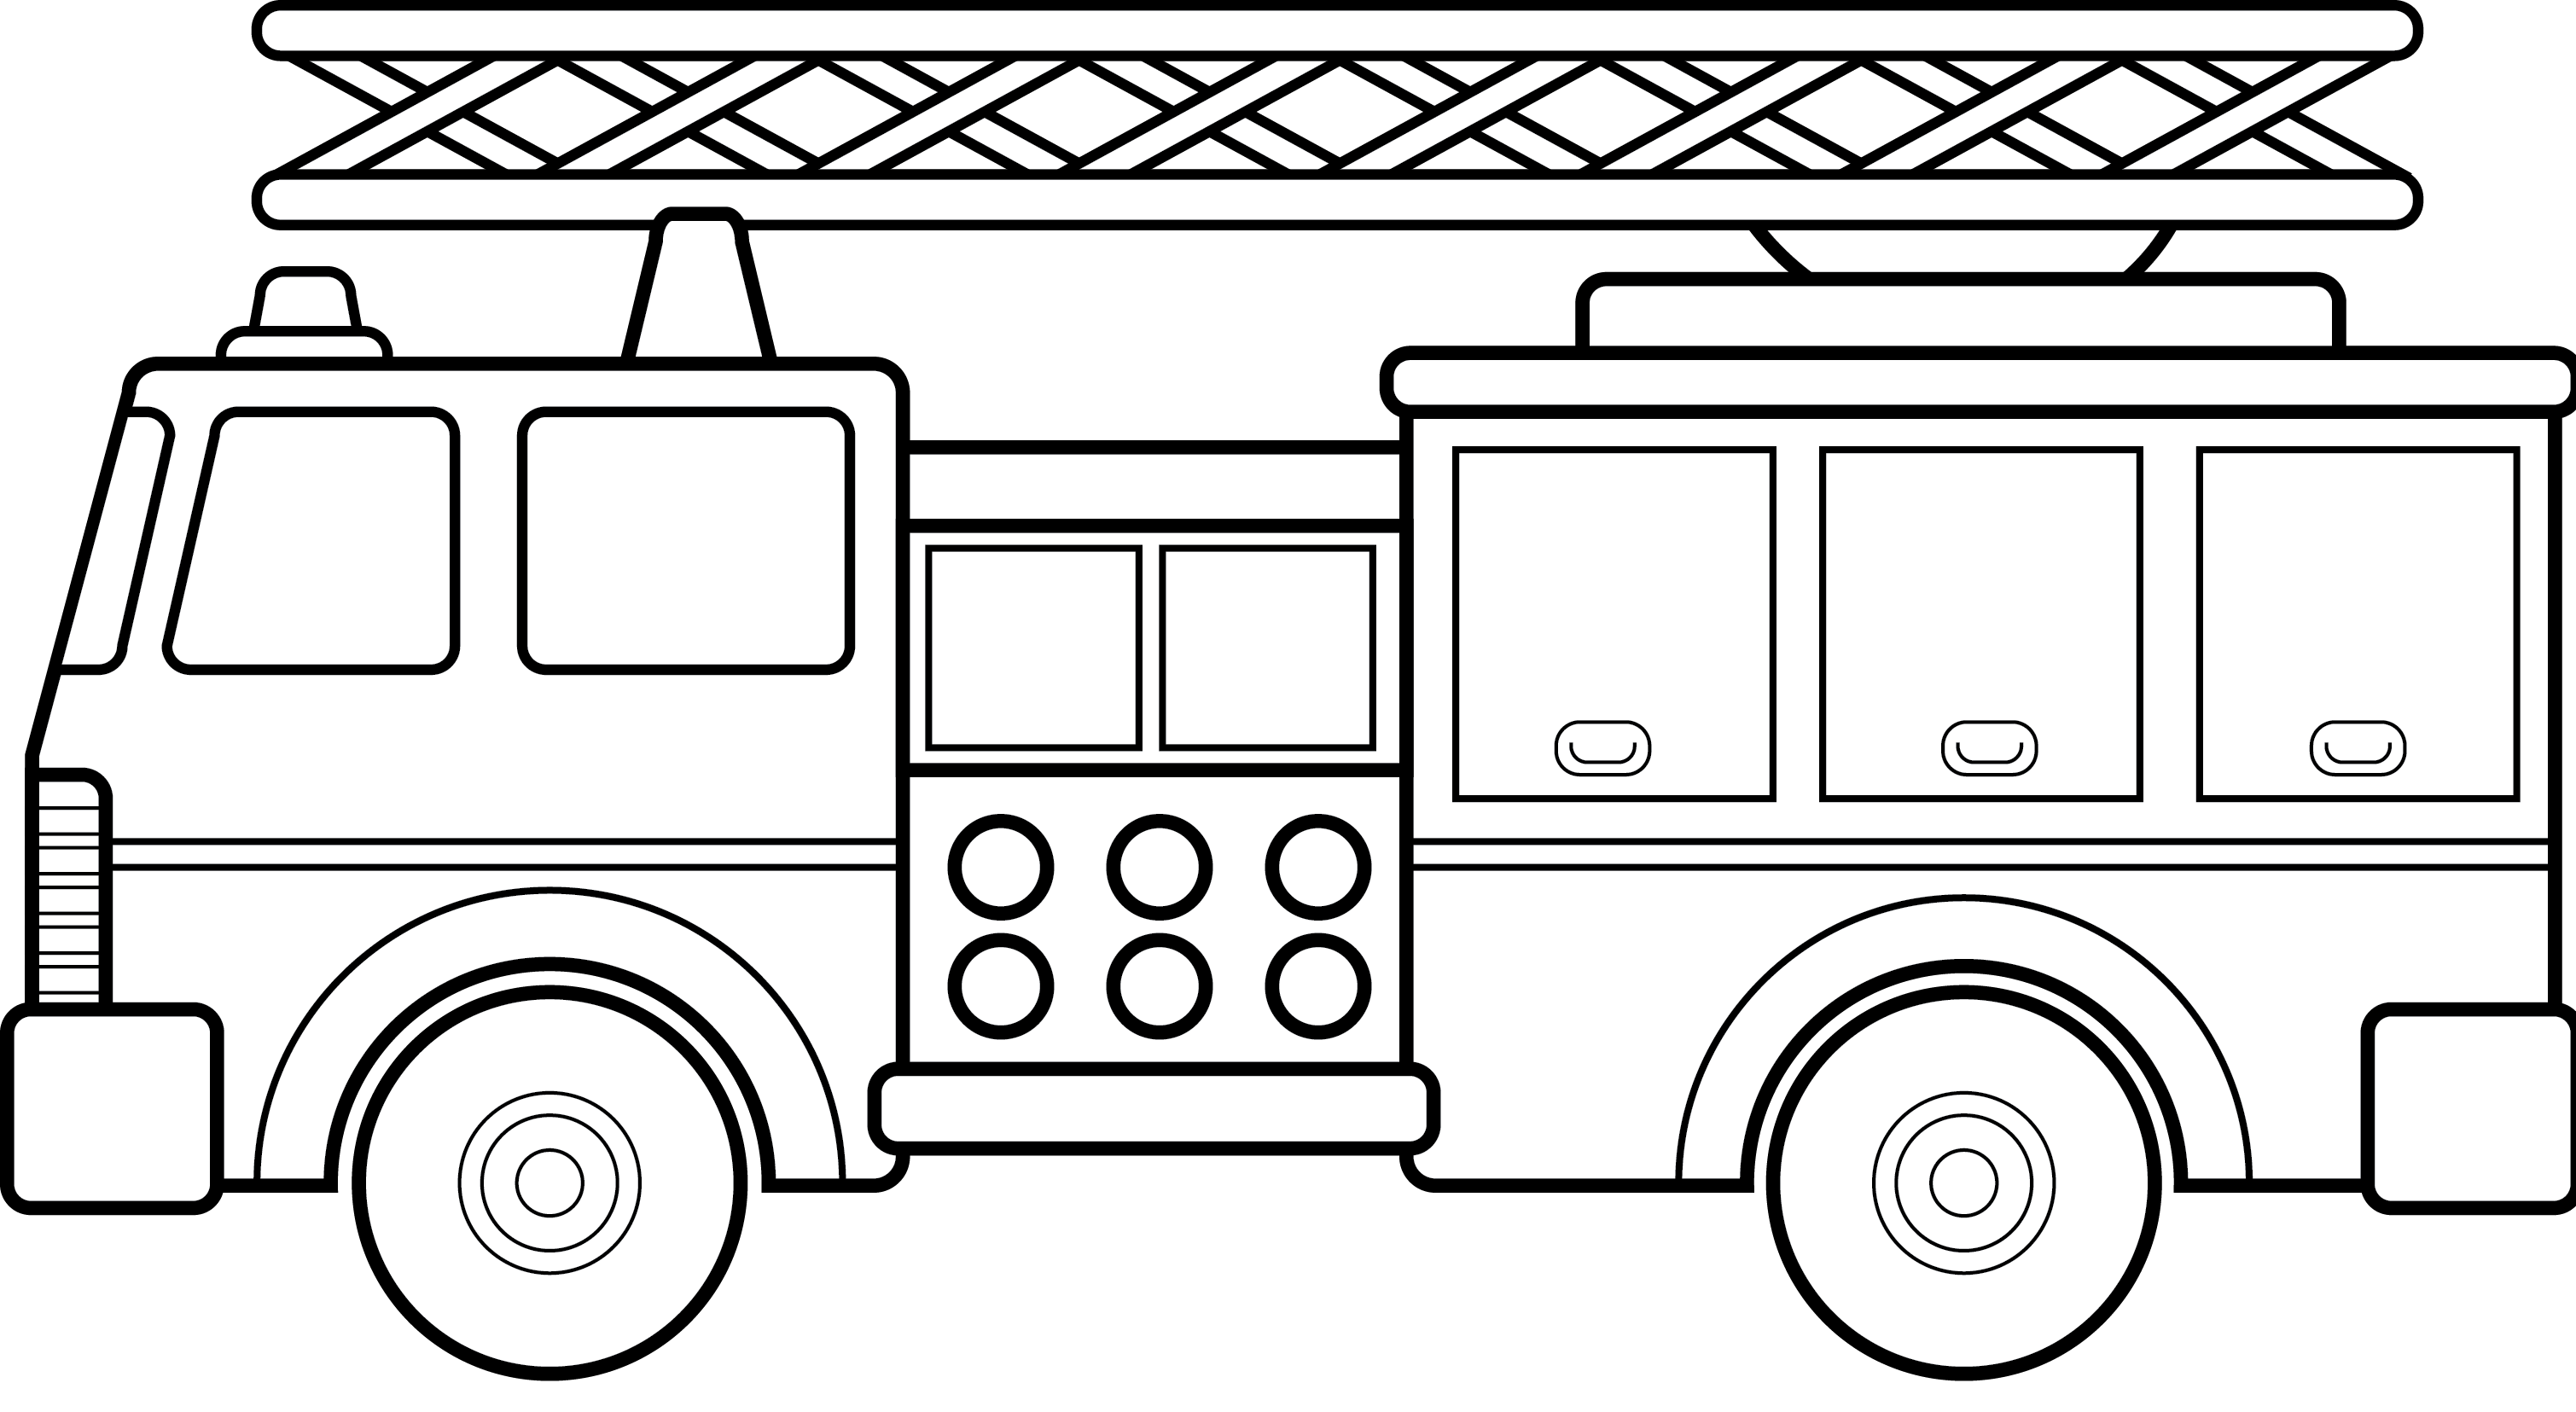 simple car coloring pages Simple Car Coloring Pages | Clipart Panda   Free Clipart Images simple car coloring pages